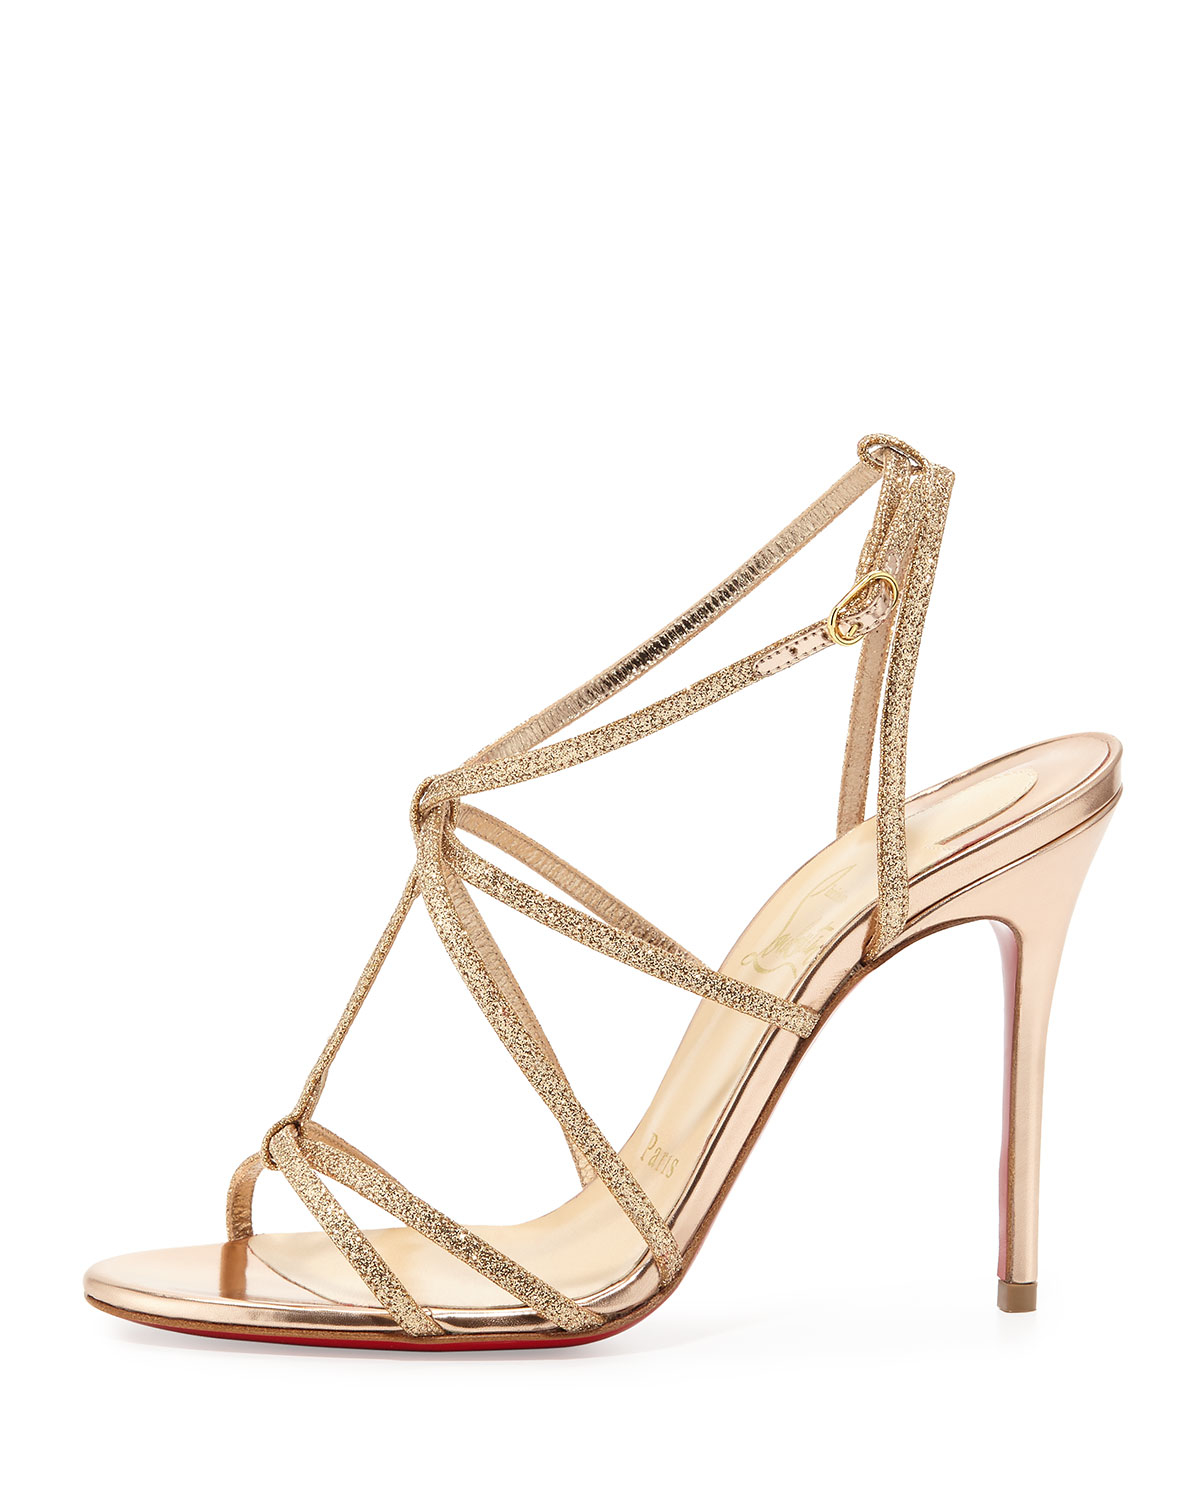 Christian louboutin Youpiyou Glitter Sandals in Beige (NUDE) | Lyst